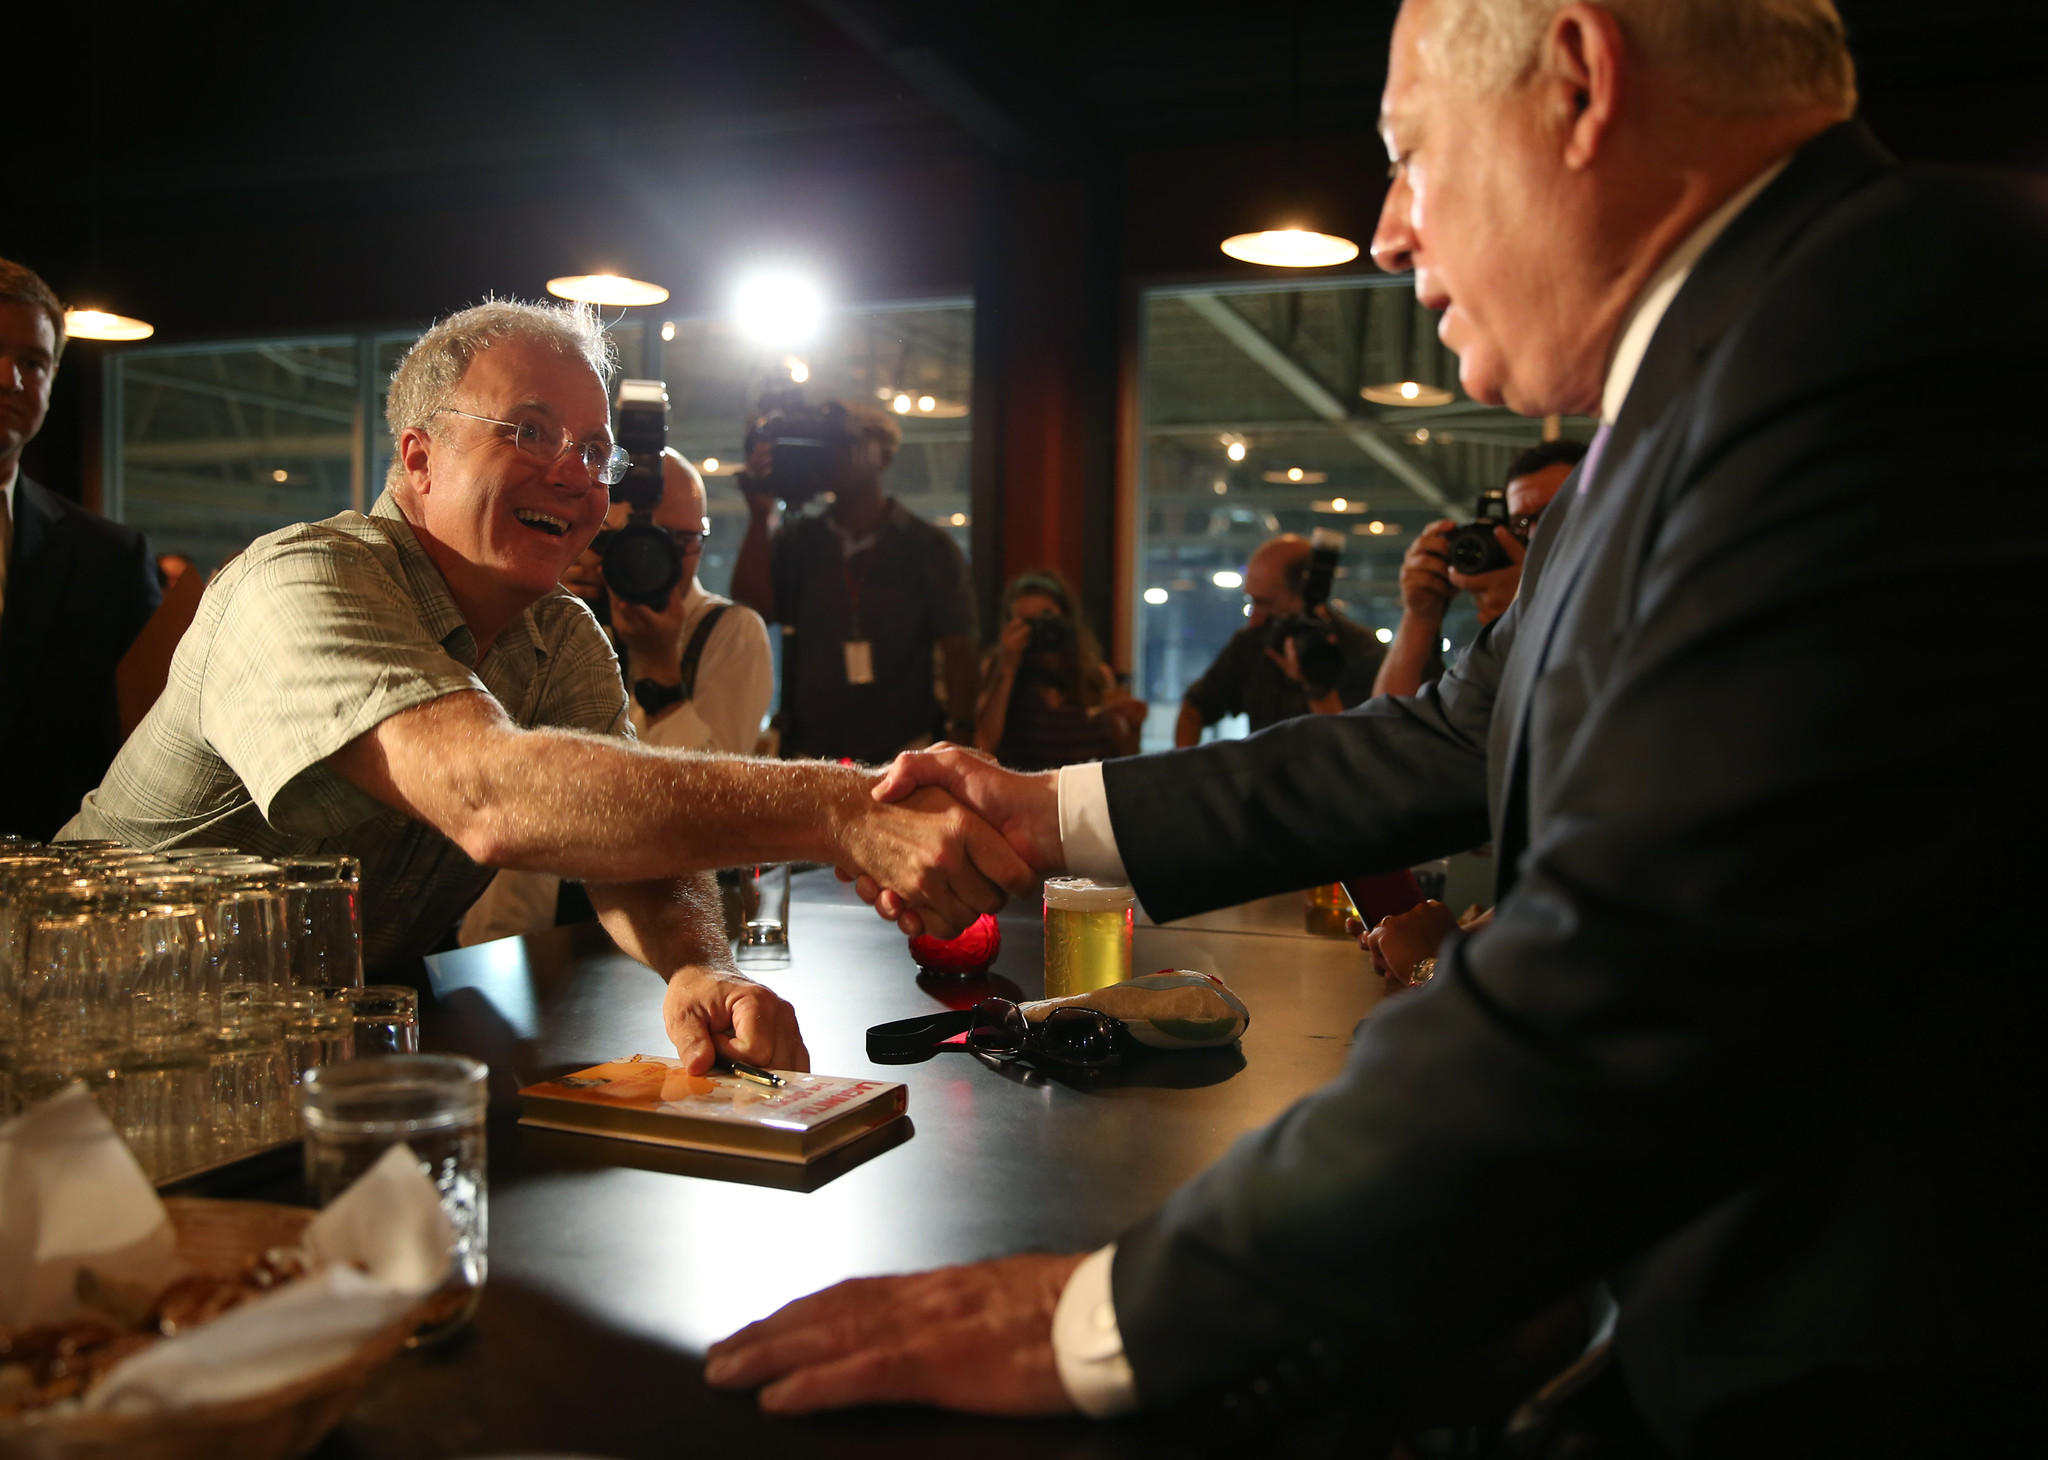 Tony Magee founder and CEO of Lagunitas Brewing Co. shakes hands with Gov. Pat Quinn, after signing a book for him, during a tour of the Lagunitas Taproom.